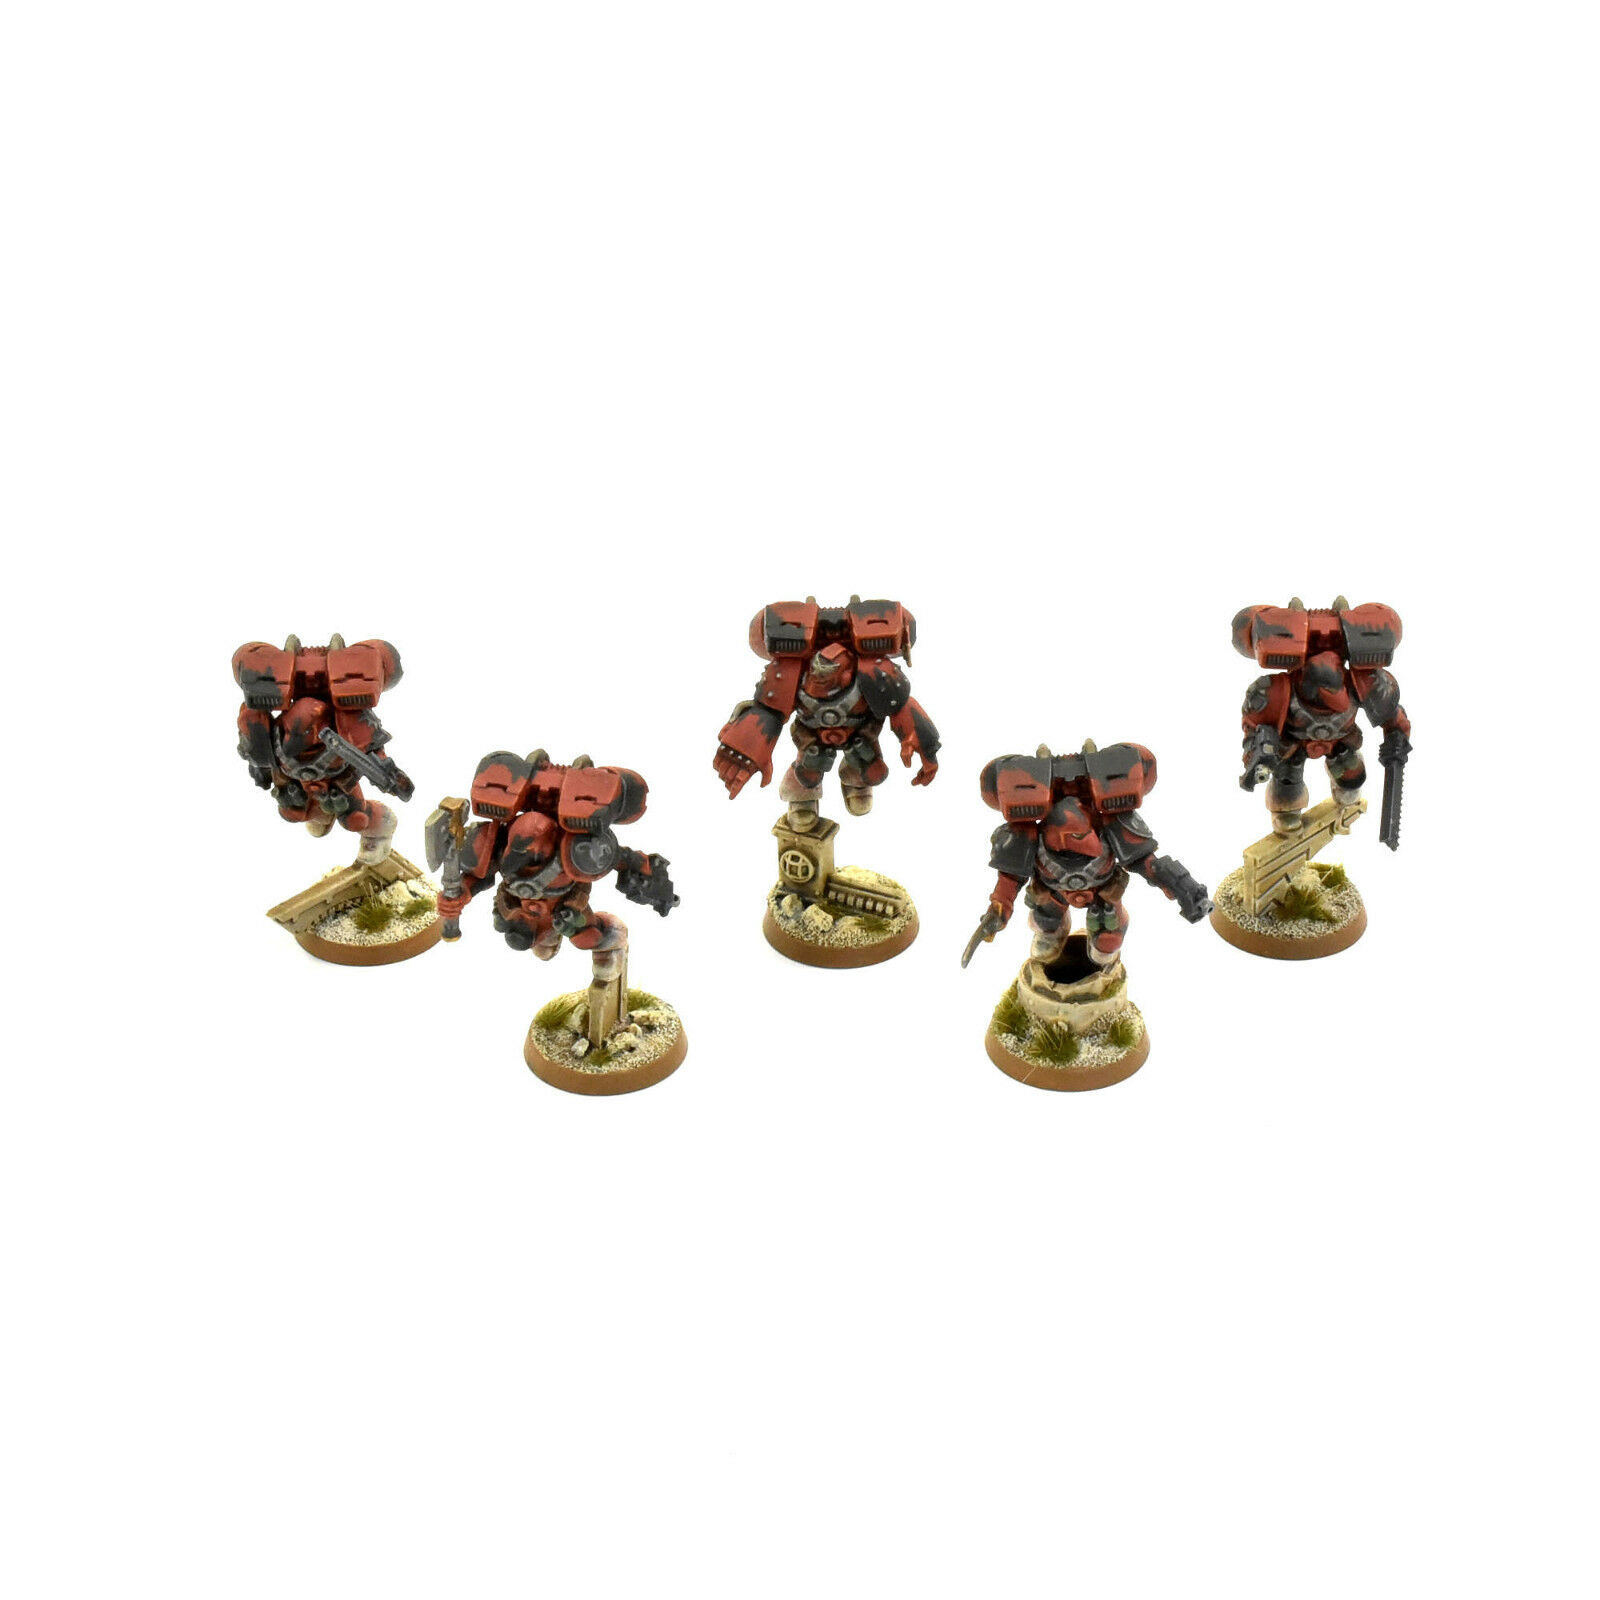 SPACE MARINES 5 vanguard veteran squad assault PRO PAINTED Red Scorpions army